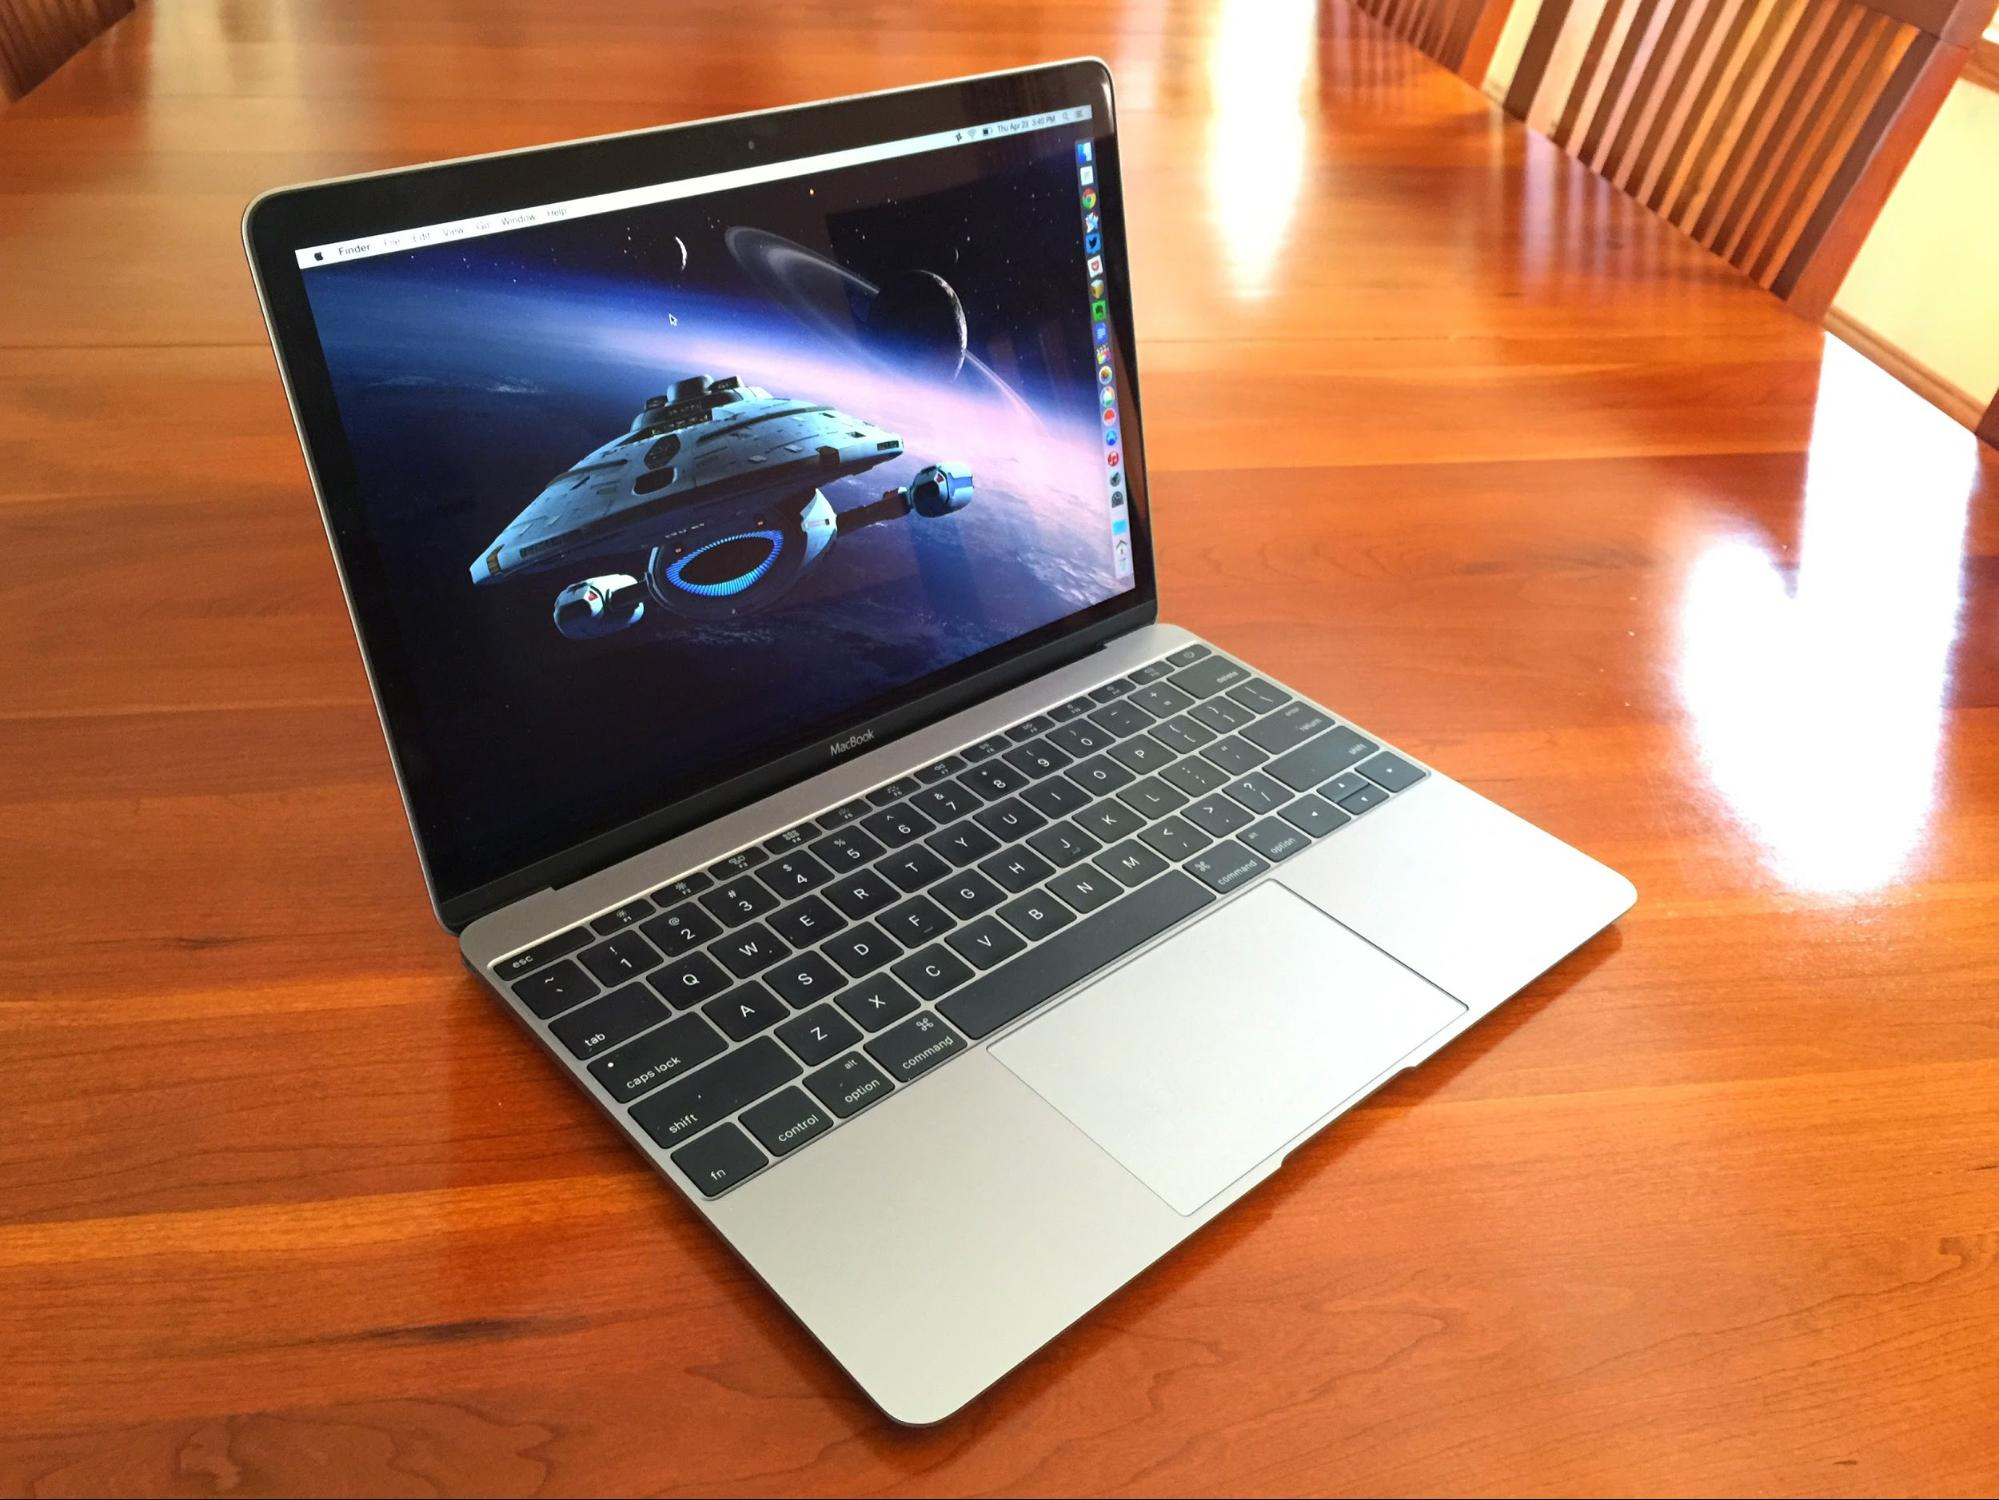 How can I convince my parents to get me a Mac?